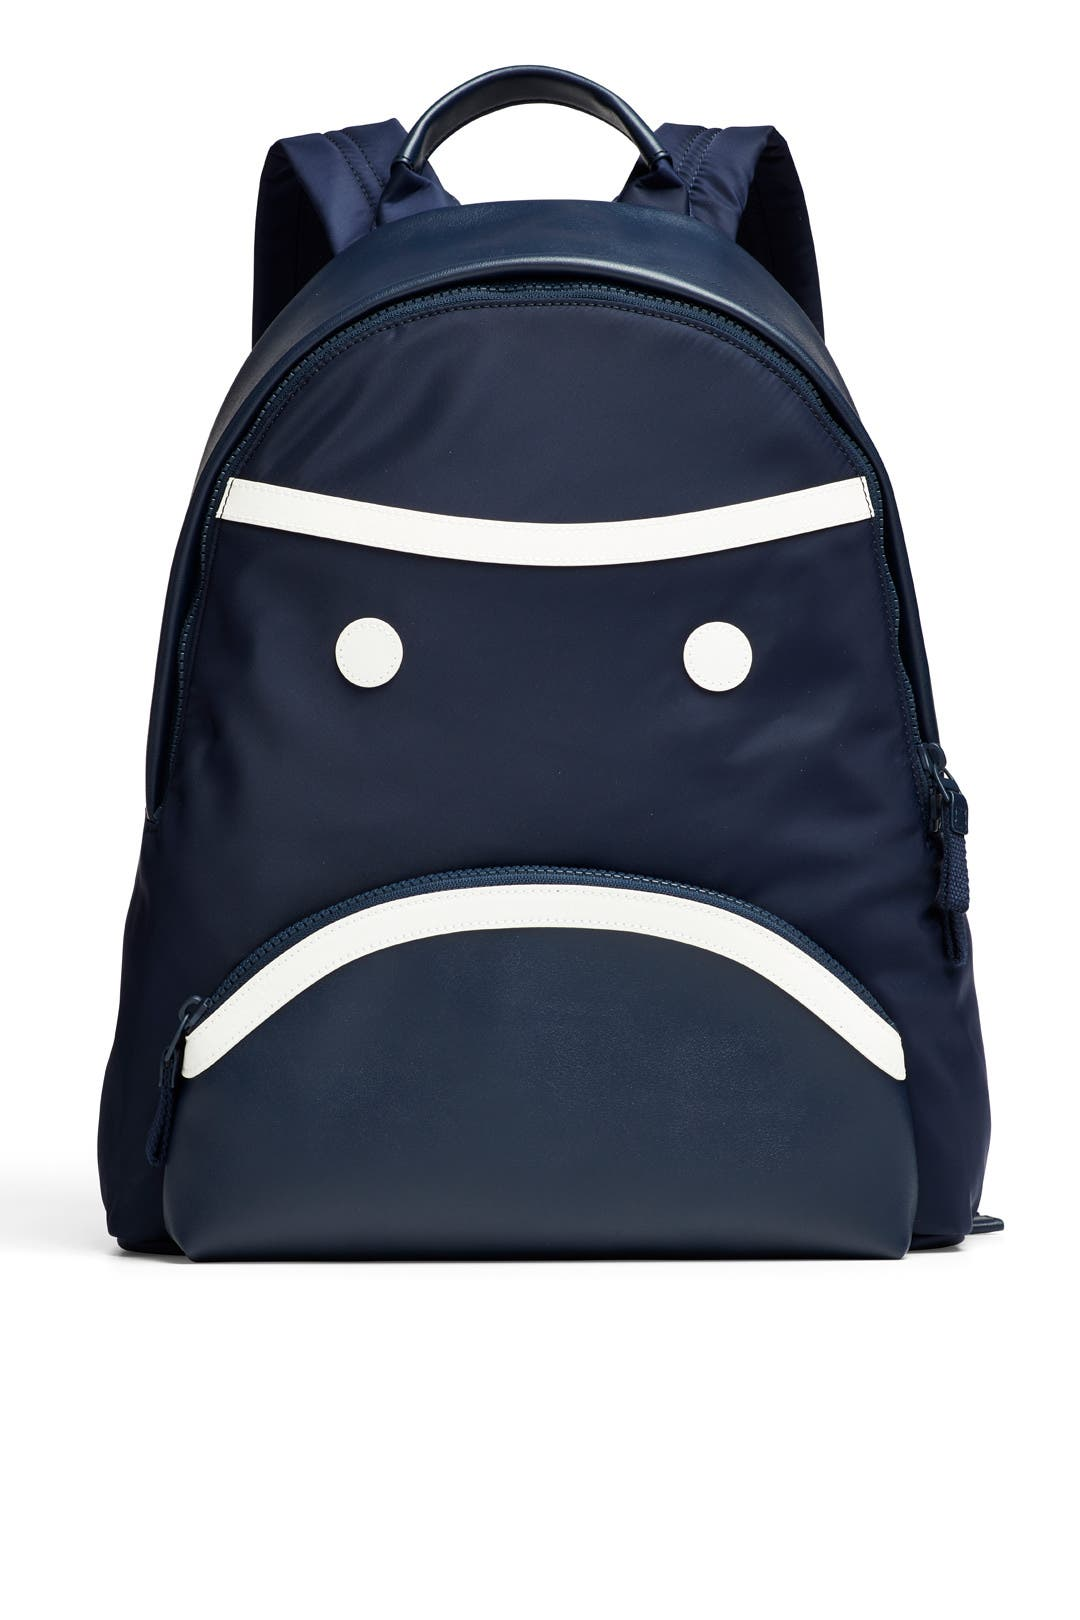 a844e7c5c474 Tory Sport Accessories. Read Reviews. Navy Grumps Backpack